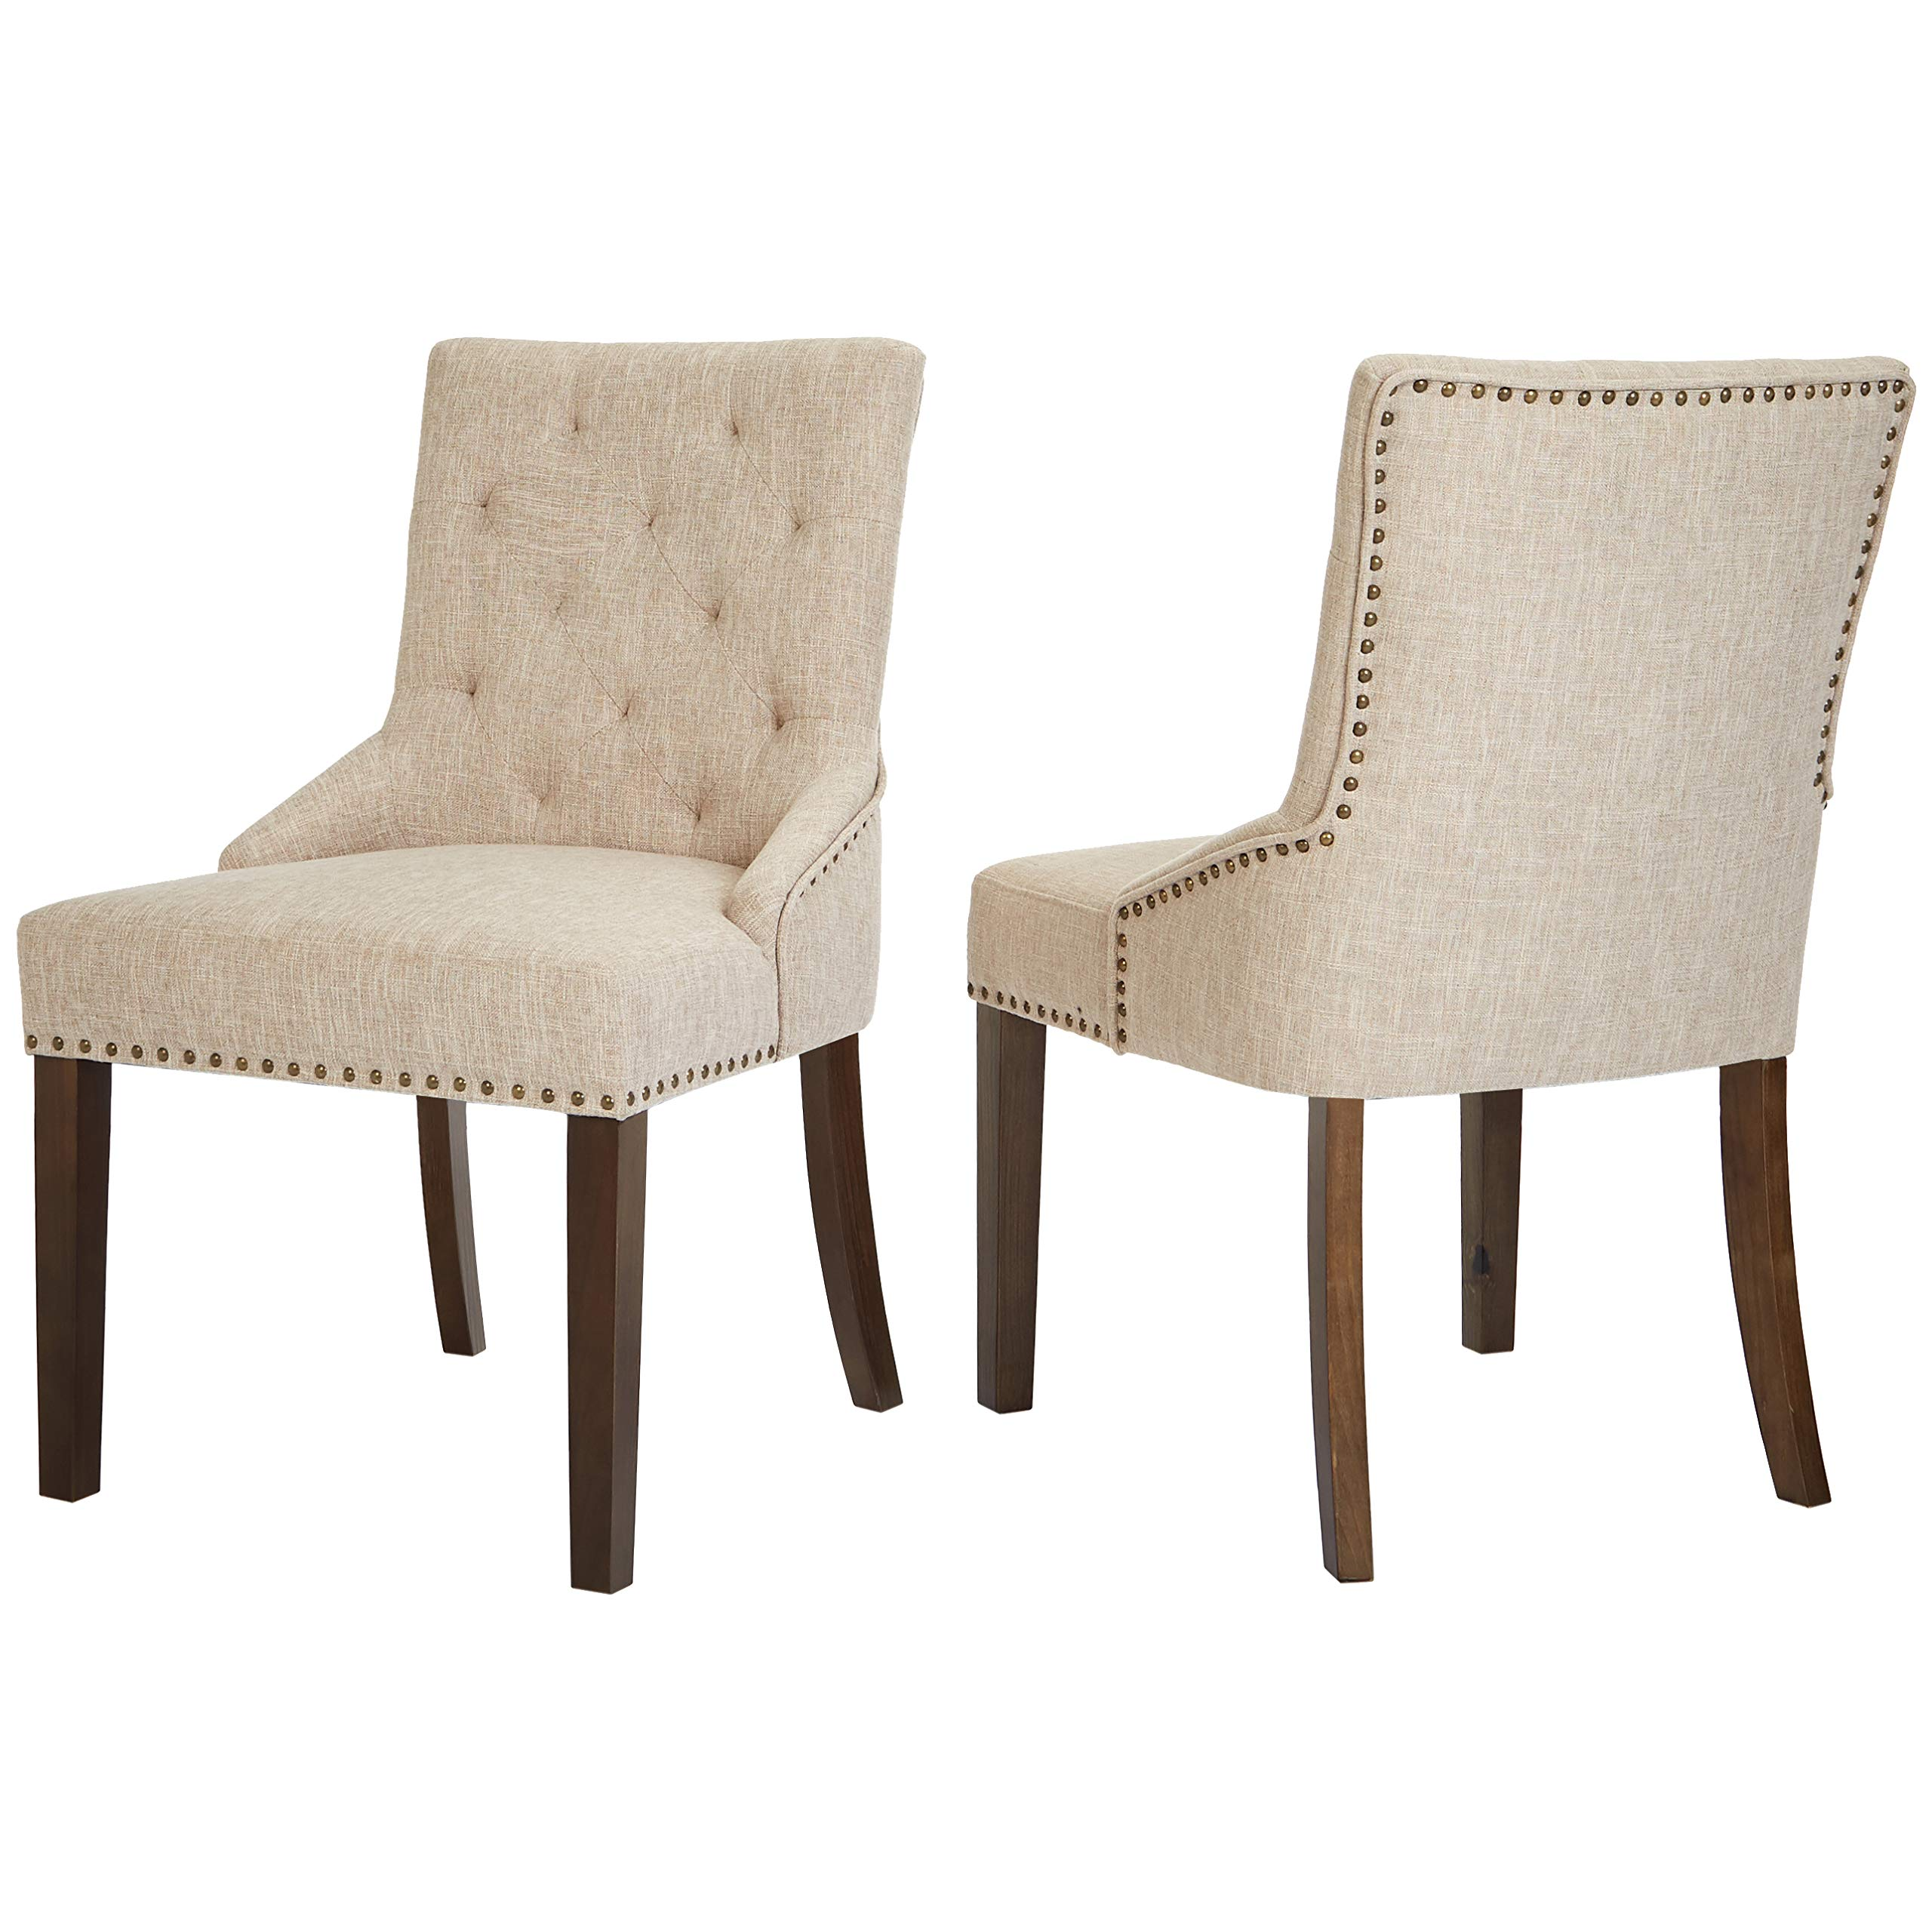 Red Hook Martil Upholstered Dining Chair with Nailhead Trim, Biscuit Beige, Set of 2 by Red Hook (Image #4)